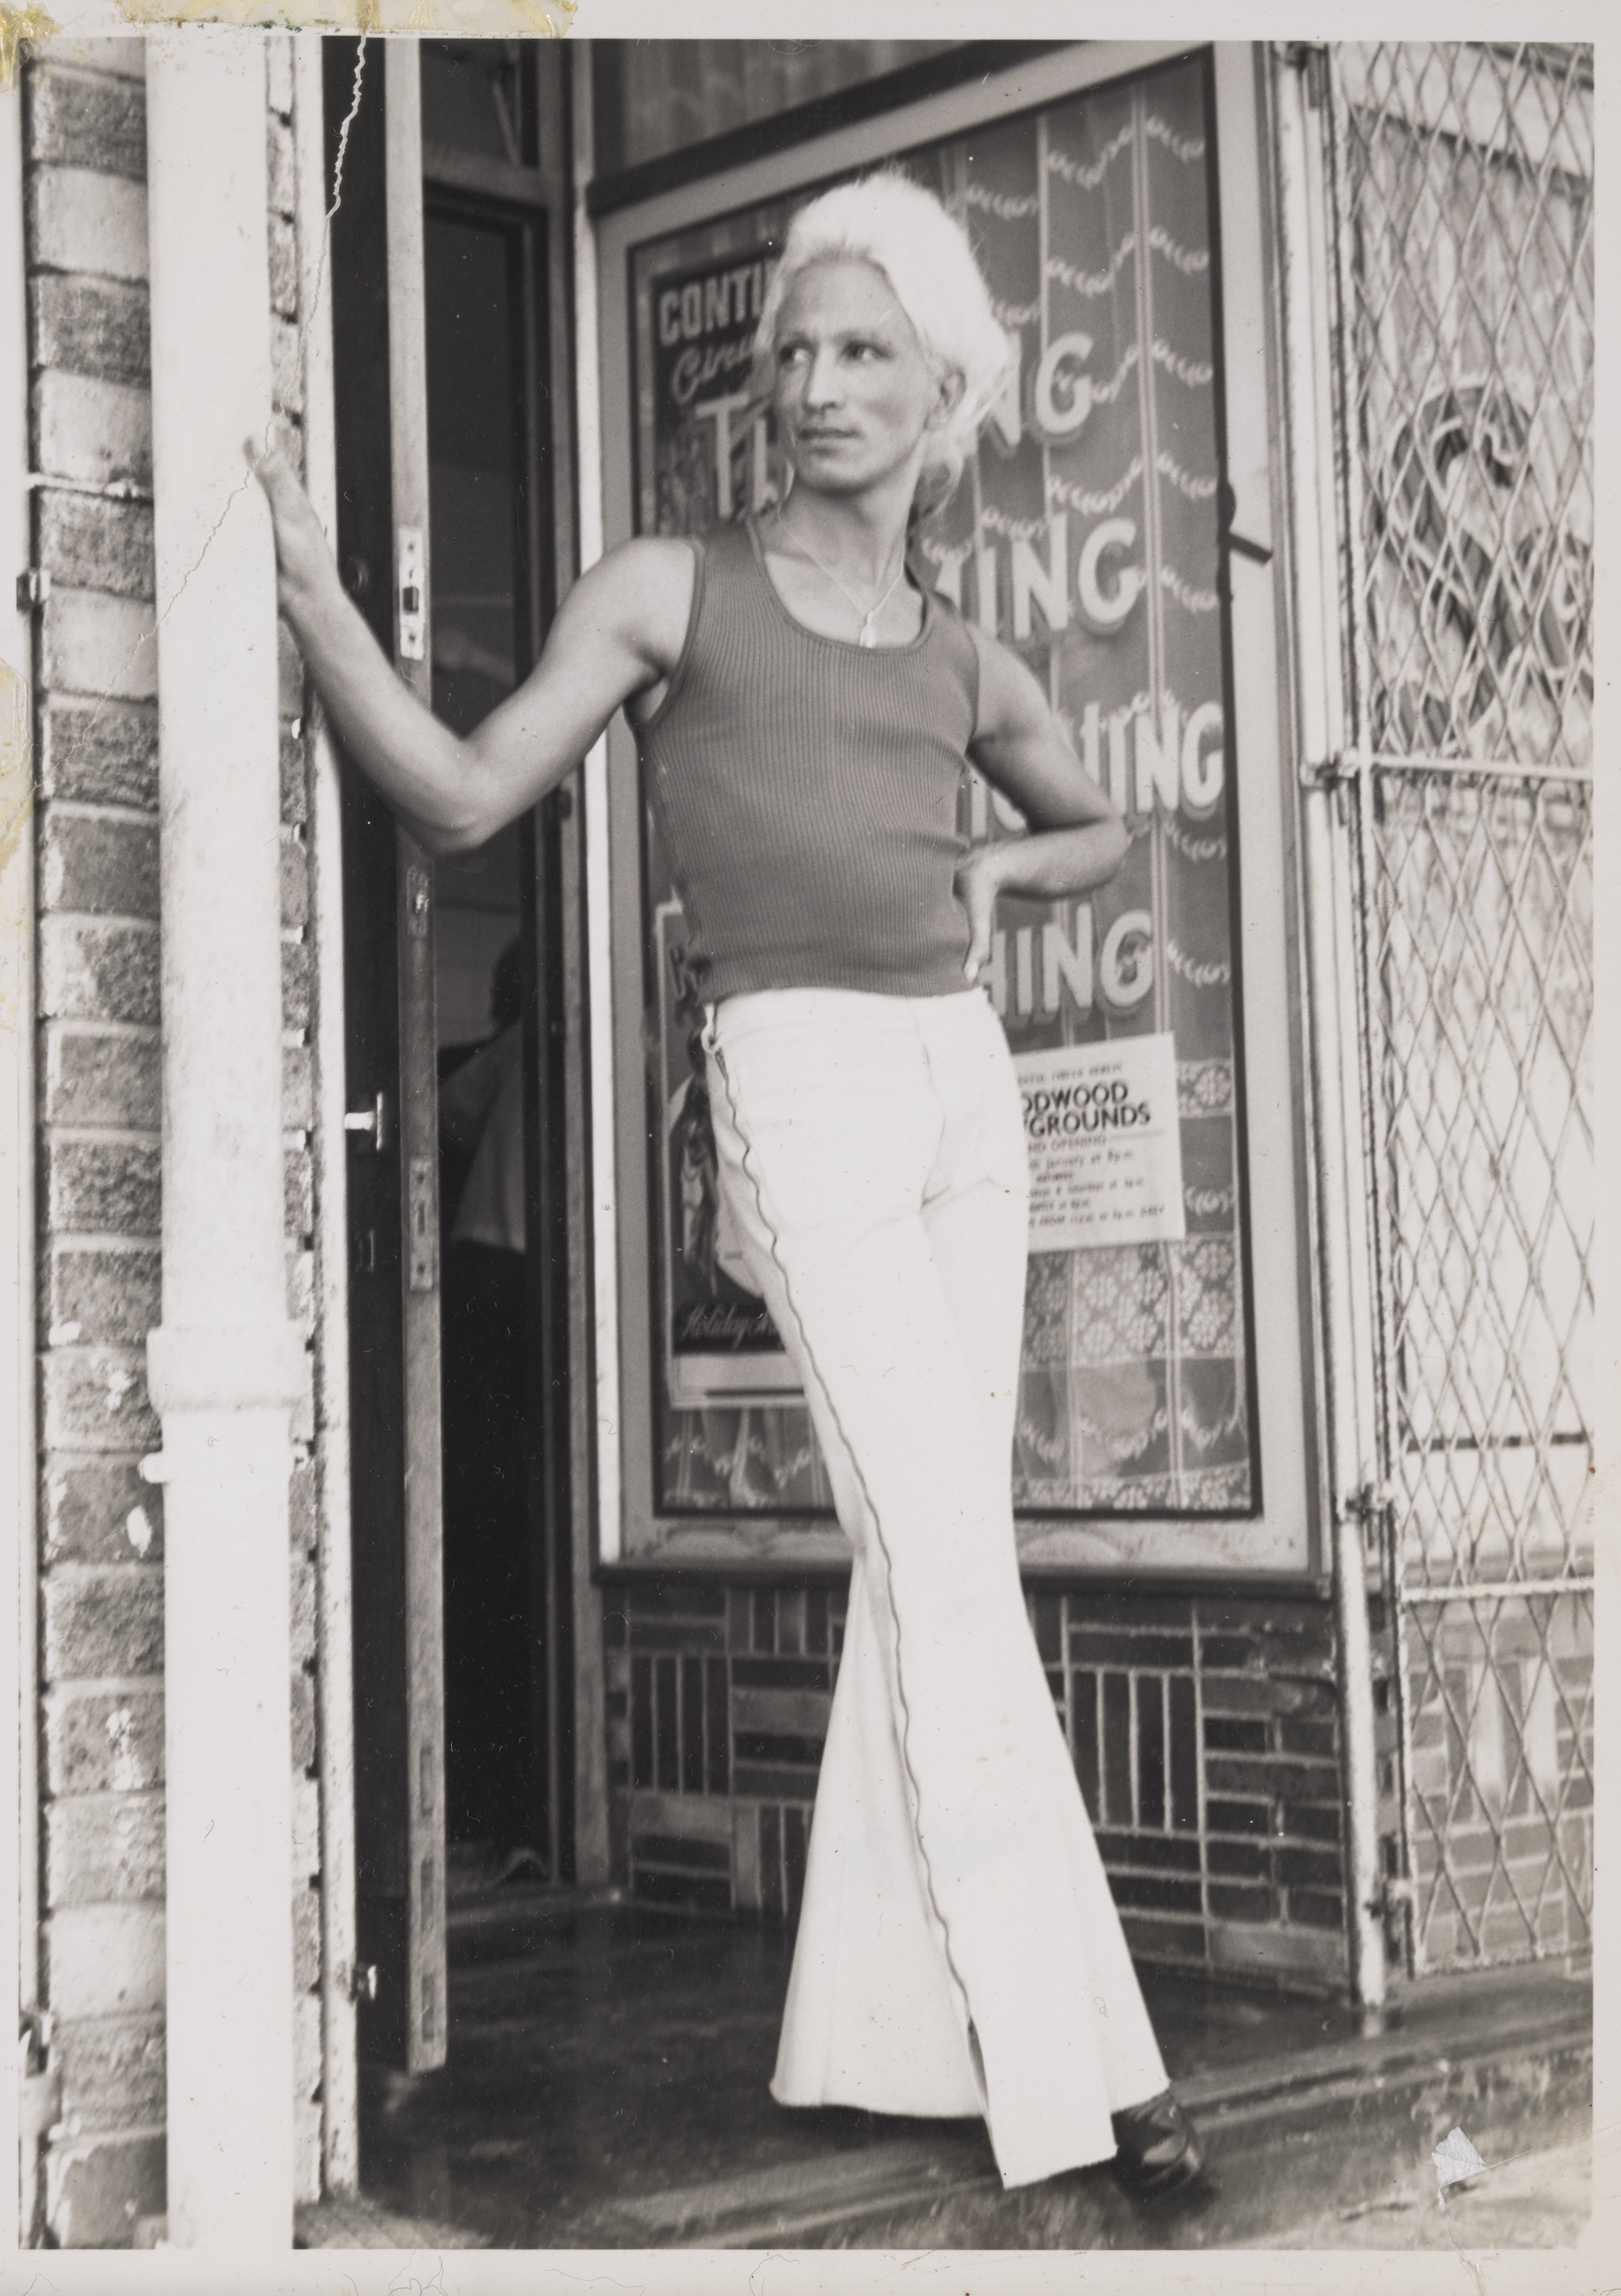 Kewpie Outside of Salon Kewpie, 1970s